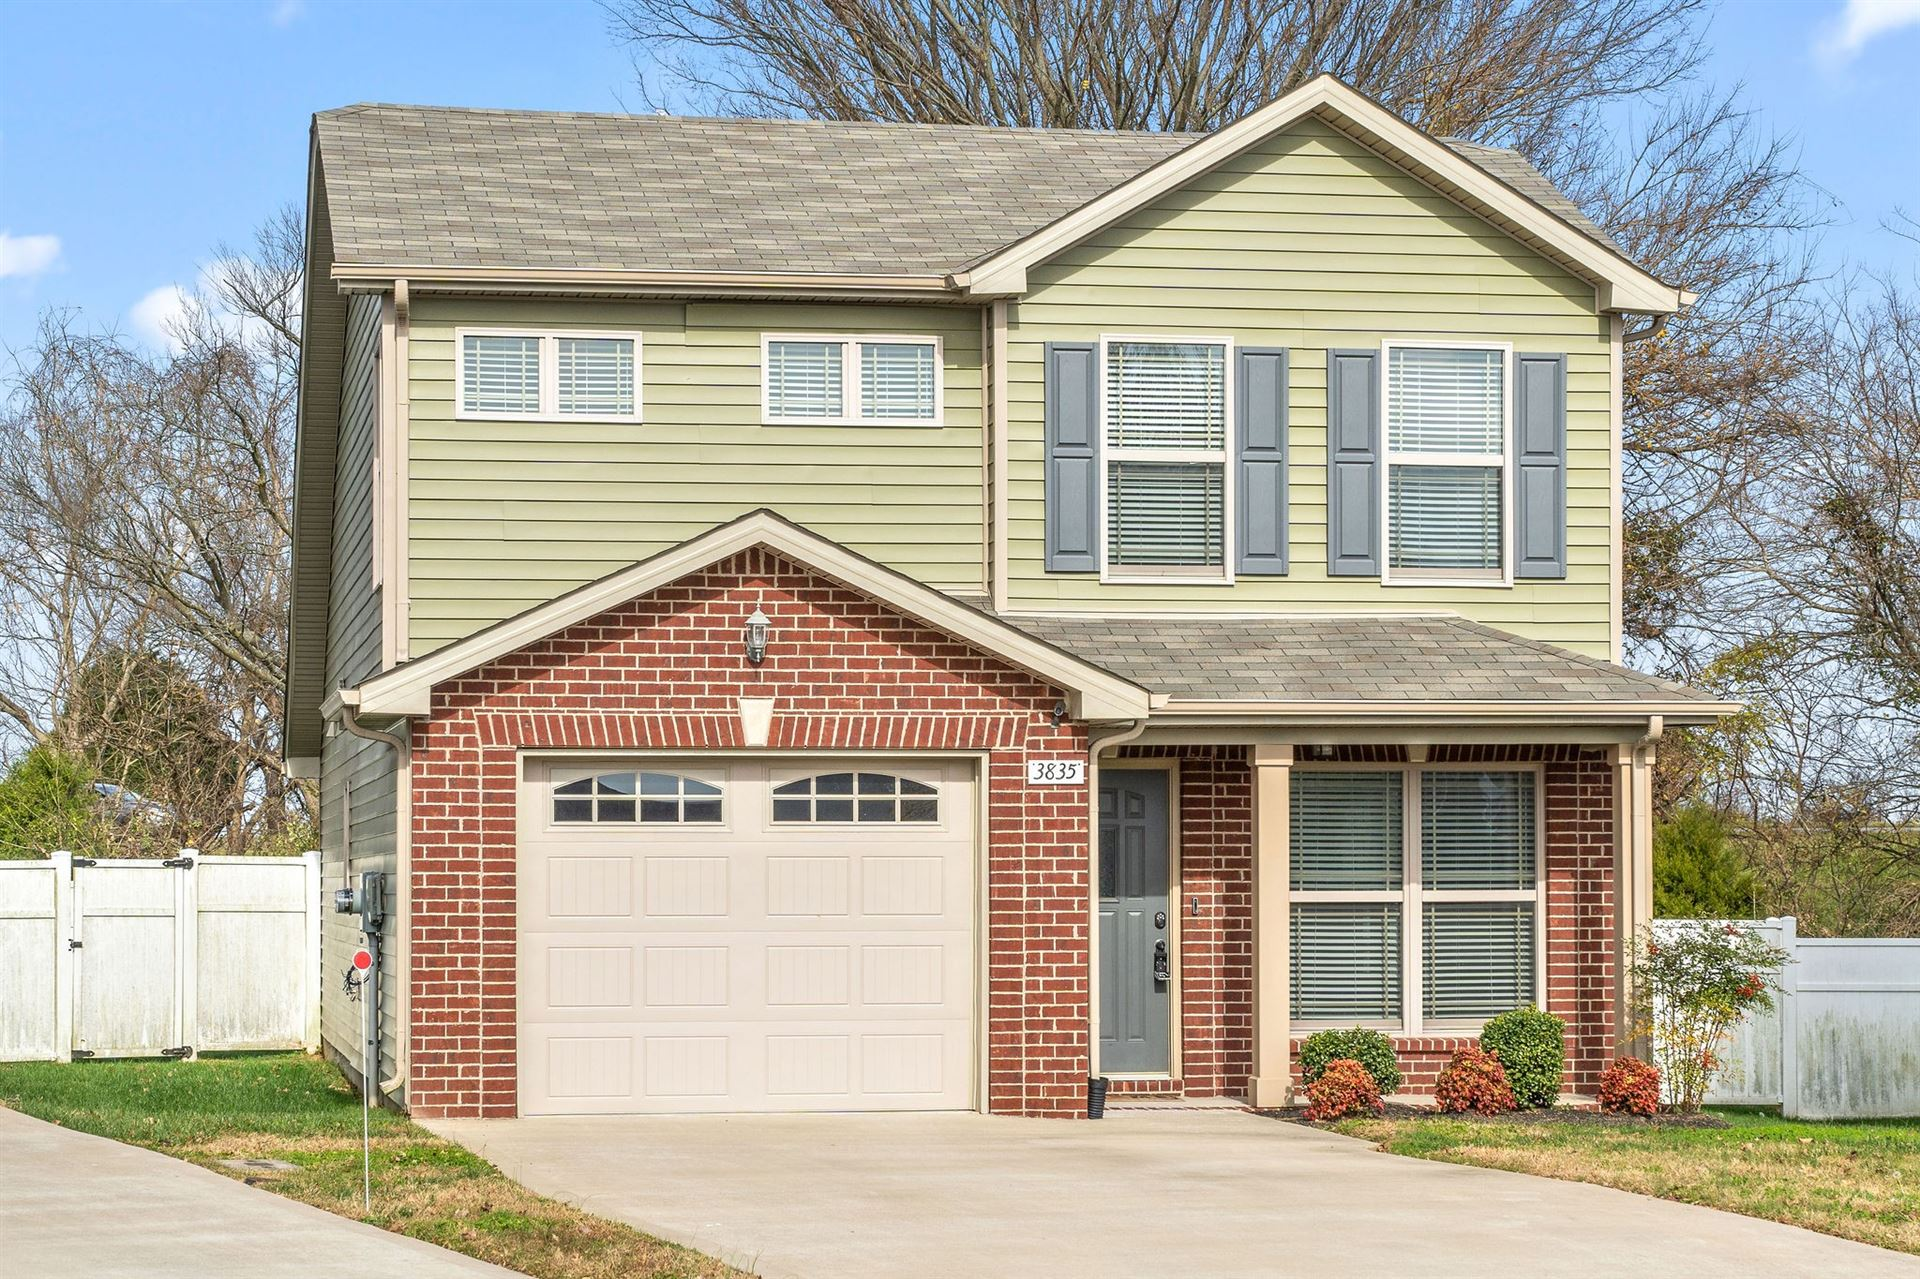 3835 Harvest Ridge, Clarksville, TN 37040 - MLS#: 2209064